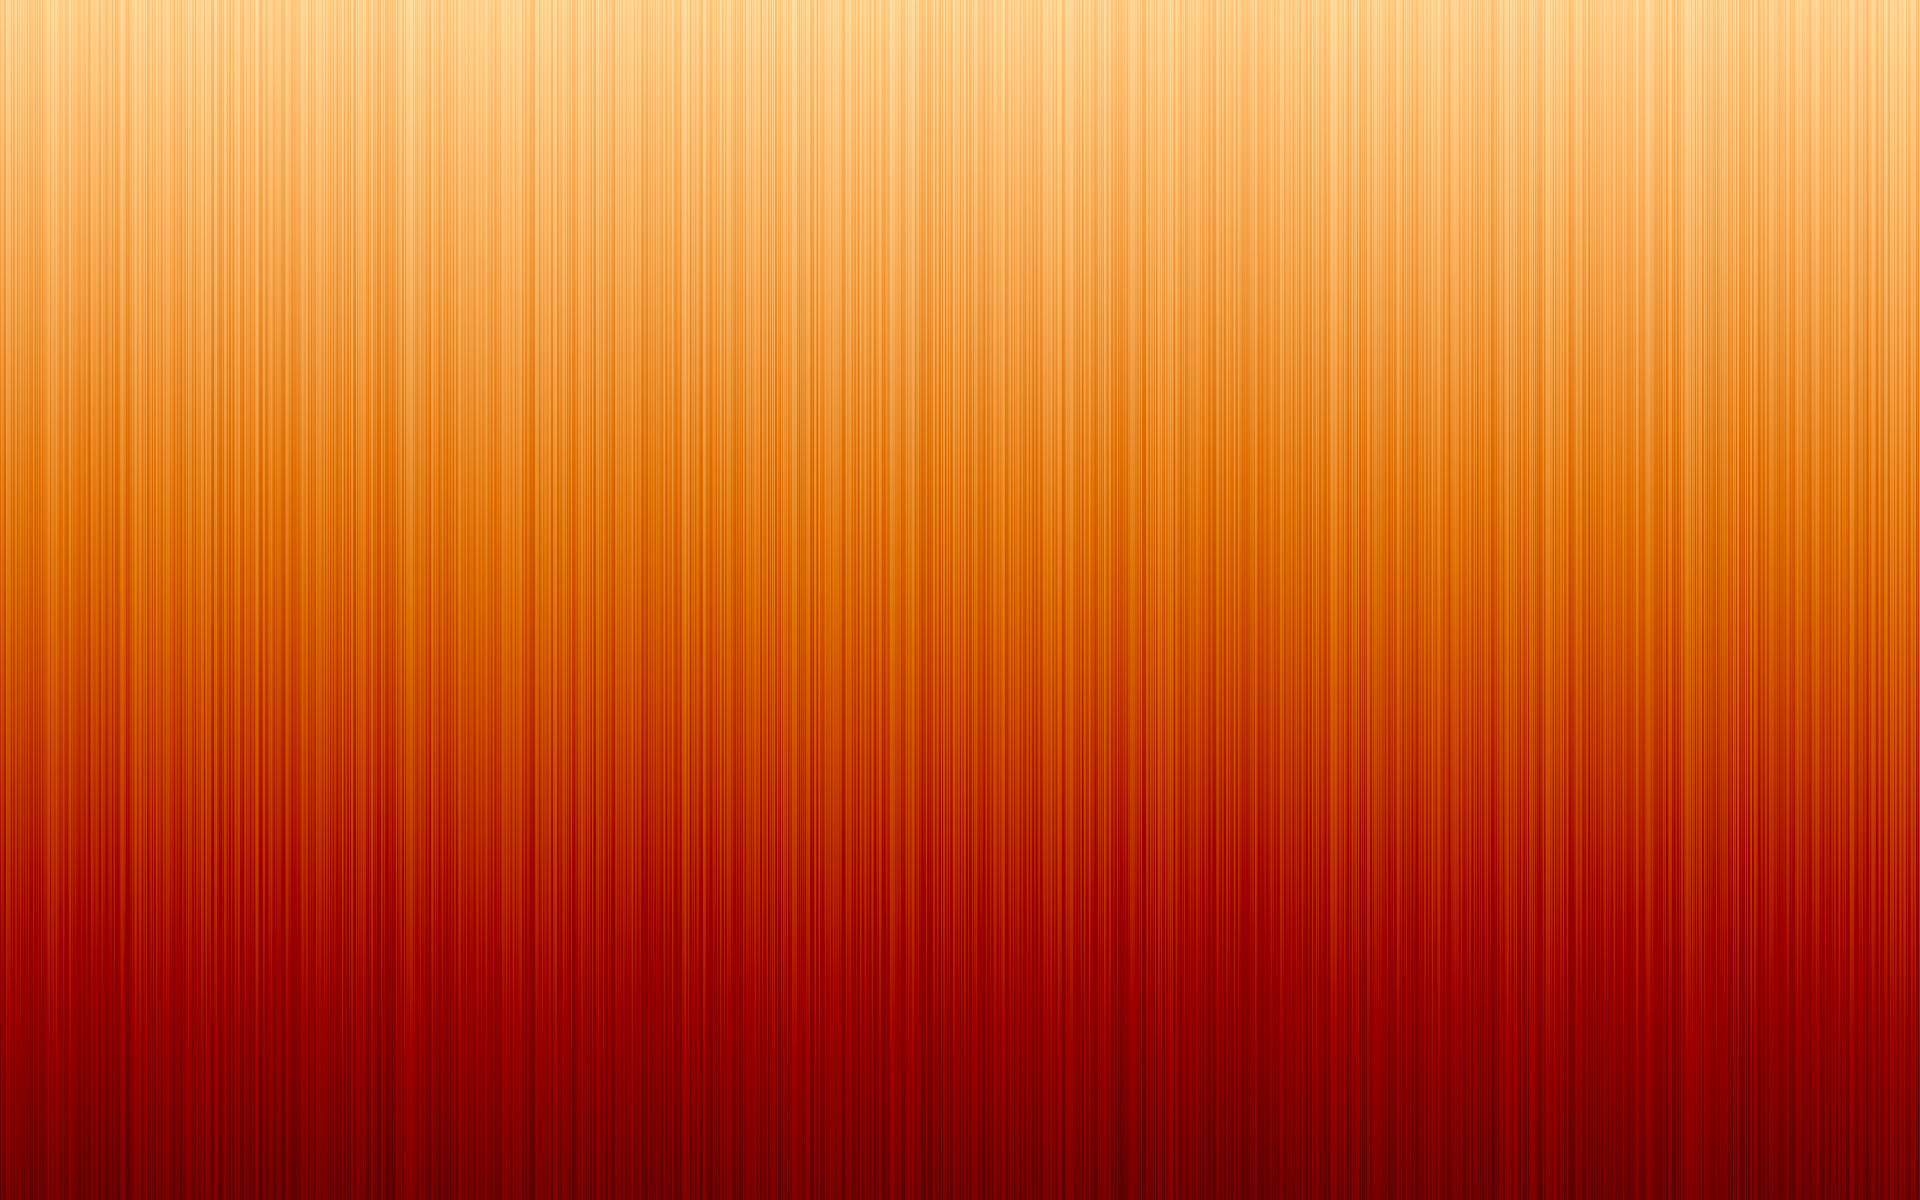 HD Orange Wallpaper, 28 Orange High Quality Wallpapers, NMgnCP PC